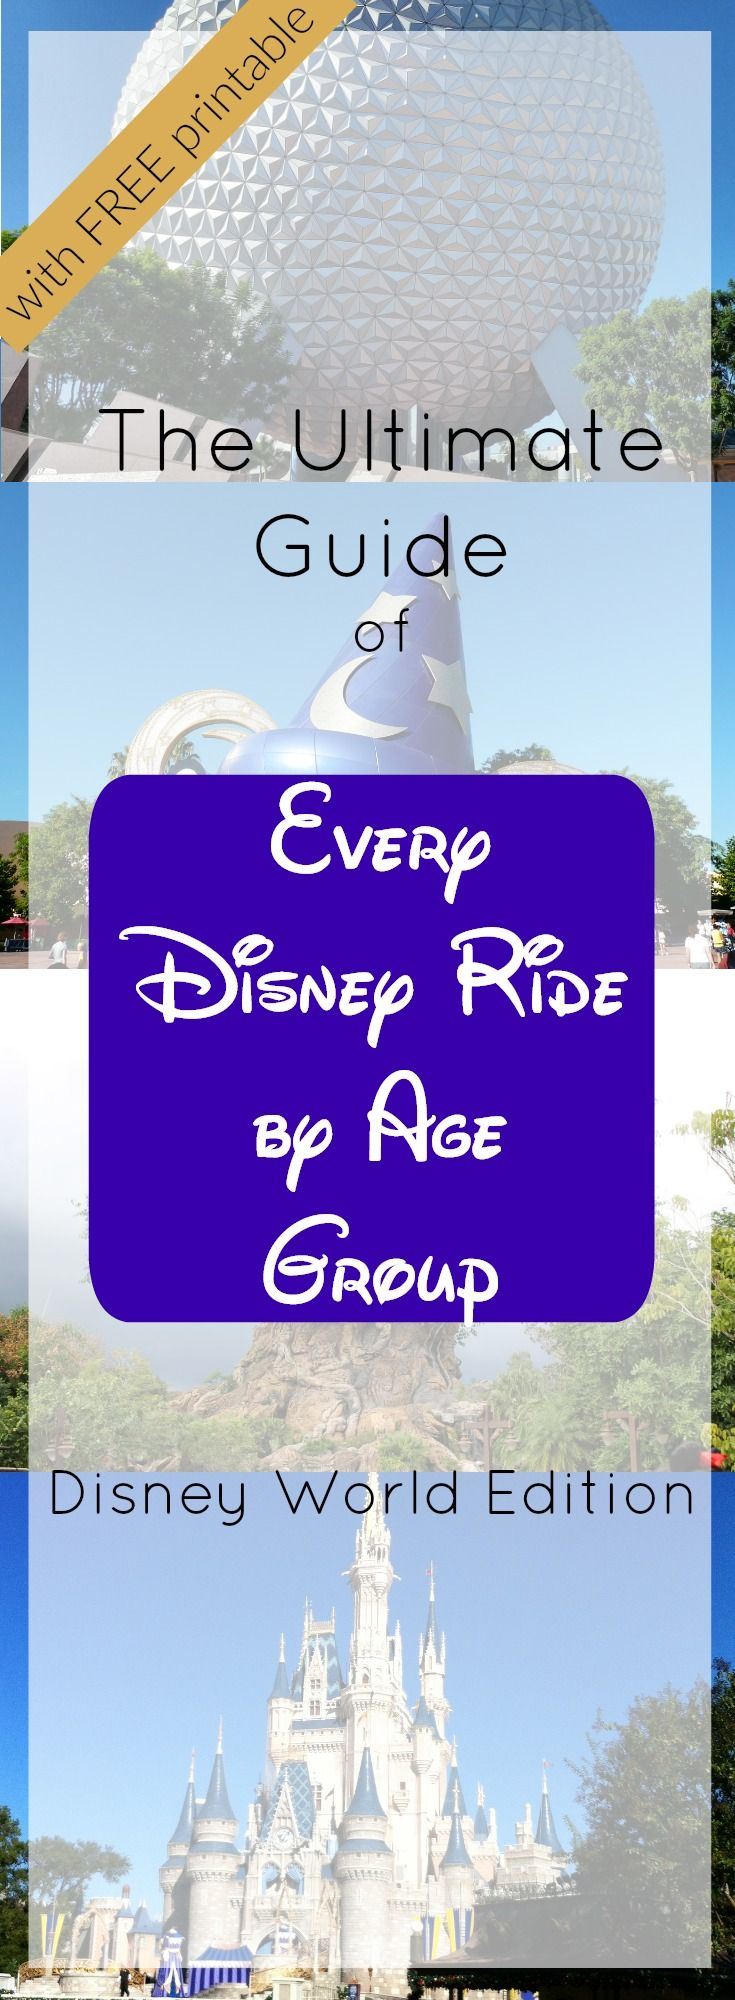 Complete list of EVERY Disney World Ride by Age Group | Super useful planning tool | Plan ahead for who wants to ride what!